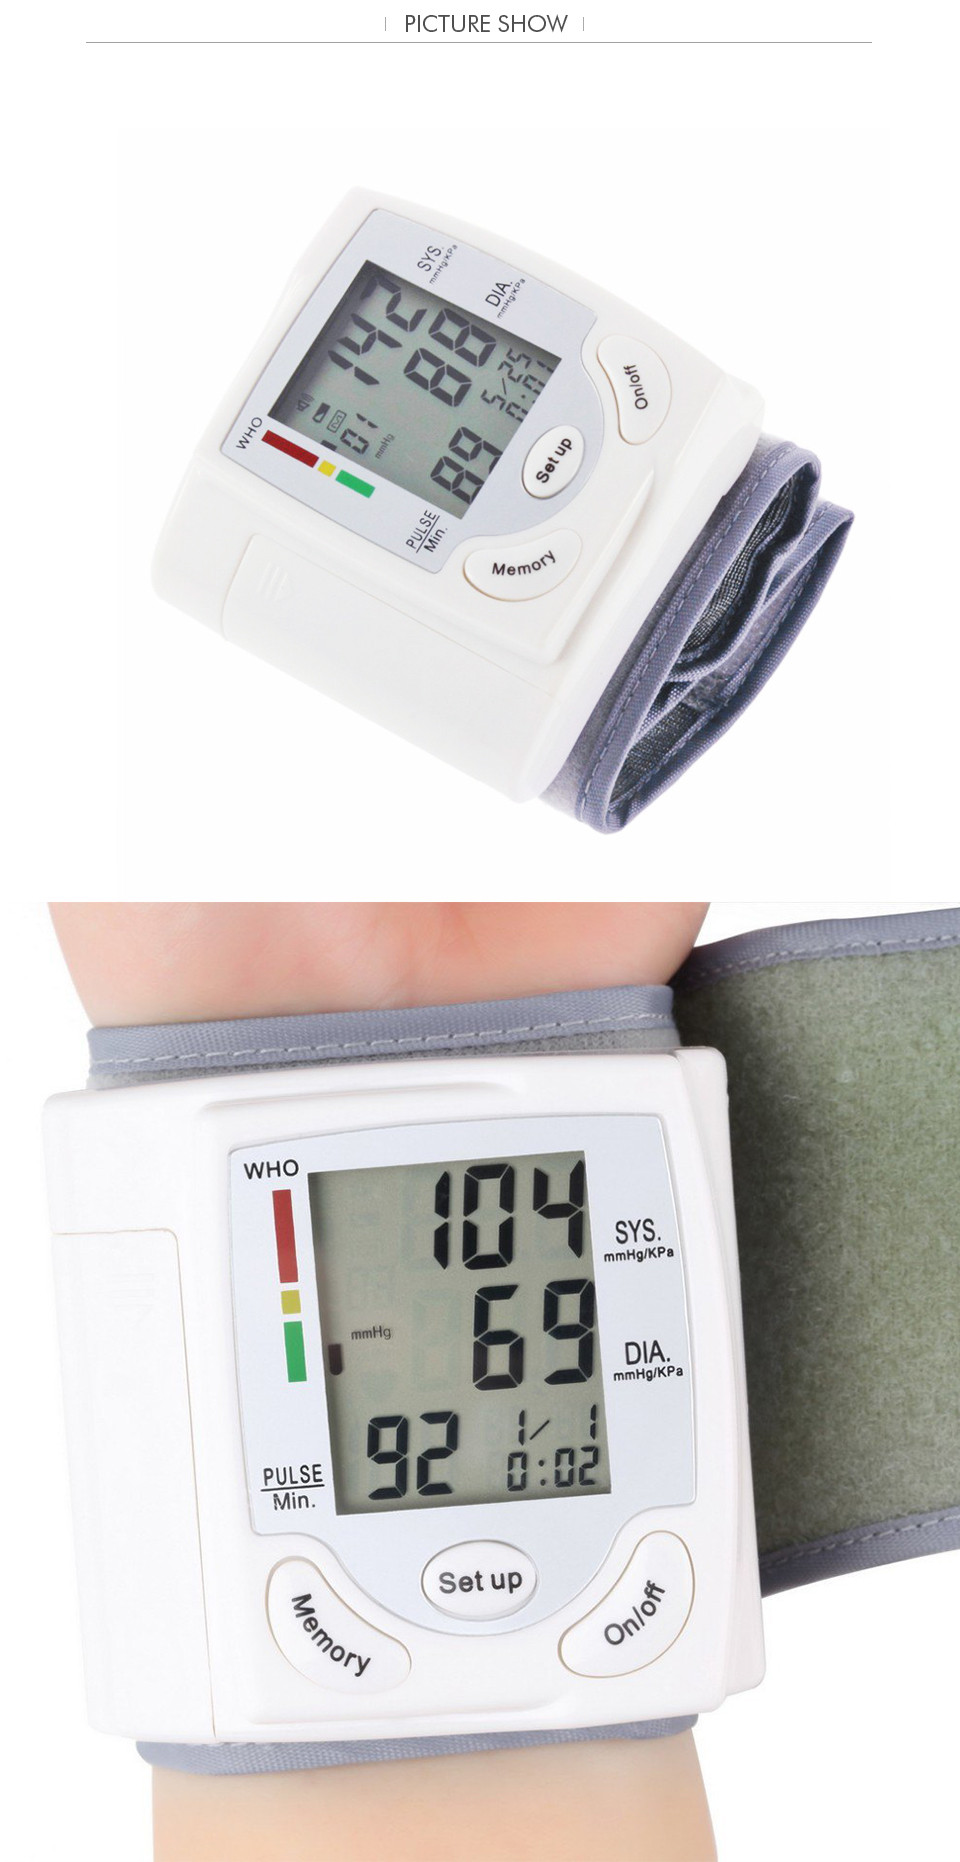 Professional Health Care Wrist Portable Digital Automatic Blood Pressure Monitor Household Type Protect Health2 17